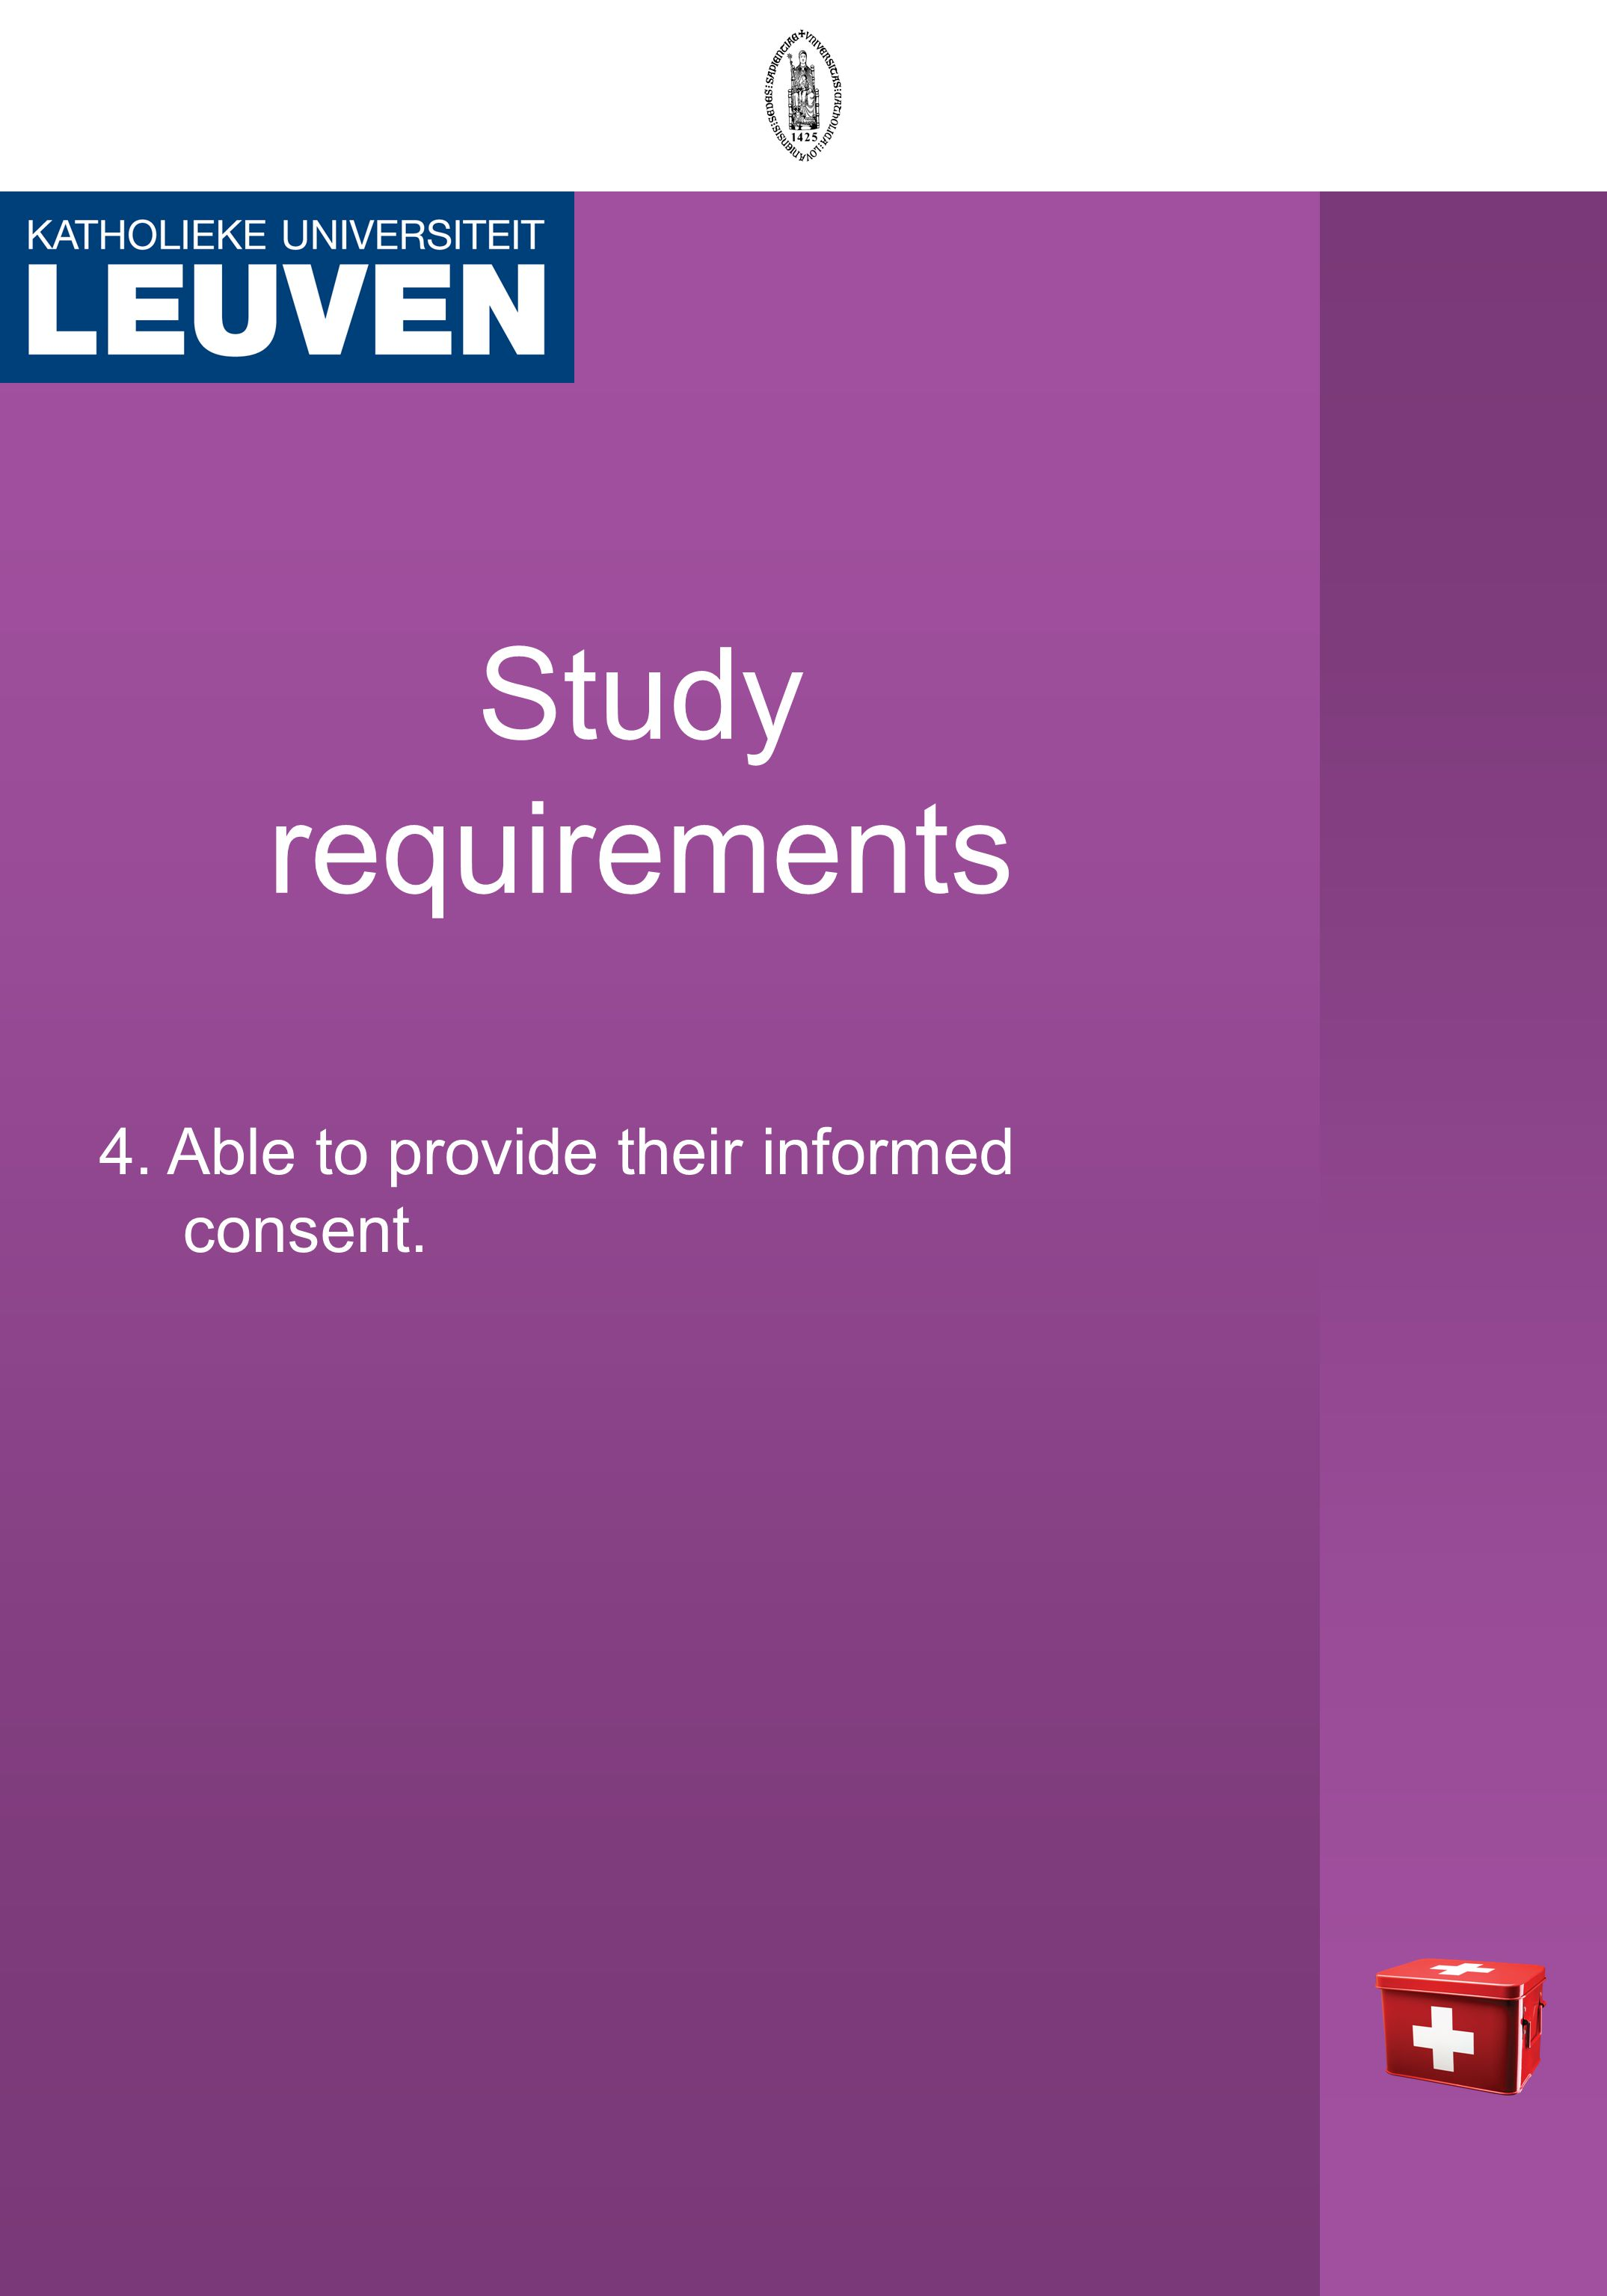 Study requirements 4. Able to provide their informed consent.